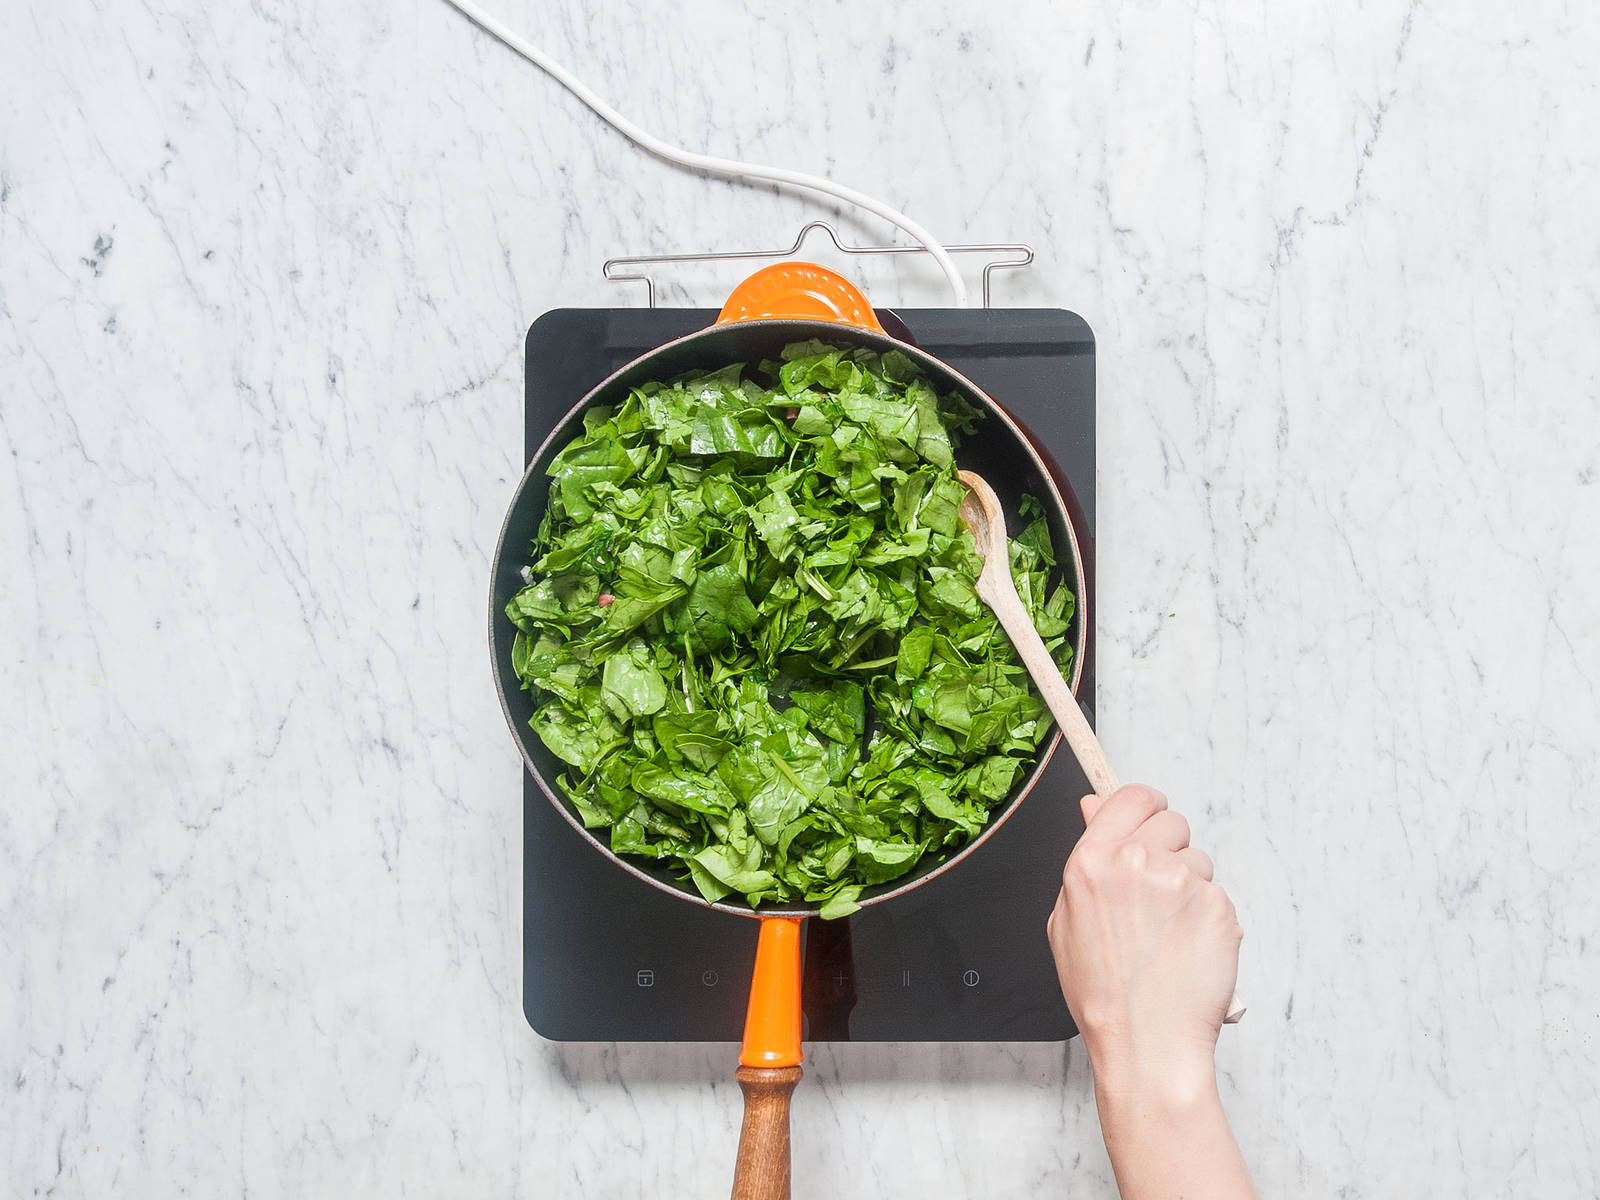 Heat olive oil in a large frying pan set over medium heat. Add diced bacon, onion, and garlic and sauté for approx. 2 – 3 min. Add green onion and spinach, season well with salt and pepper, and fry over medium heat for approx. 4 - 5 min.